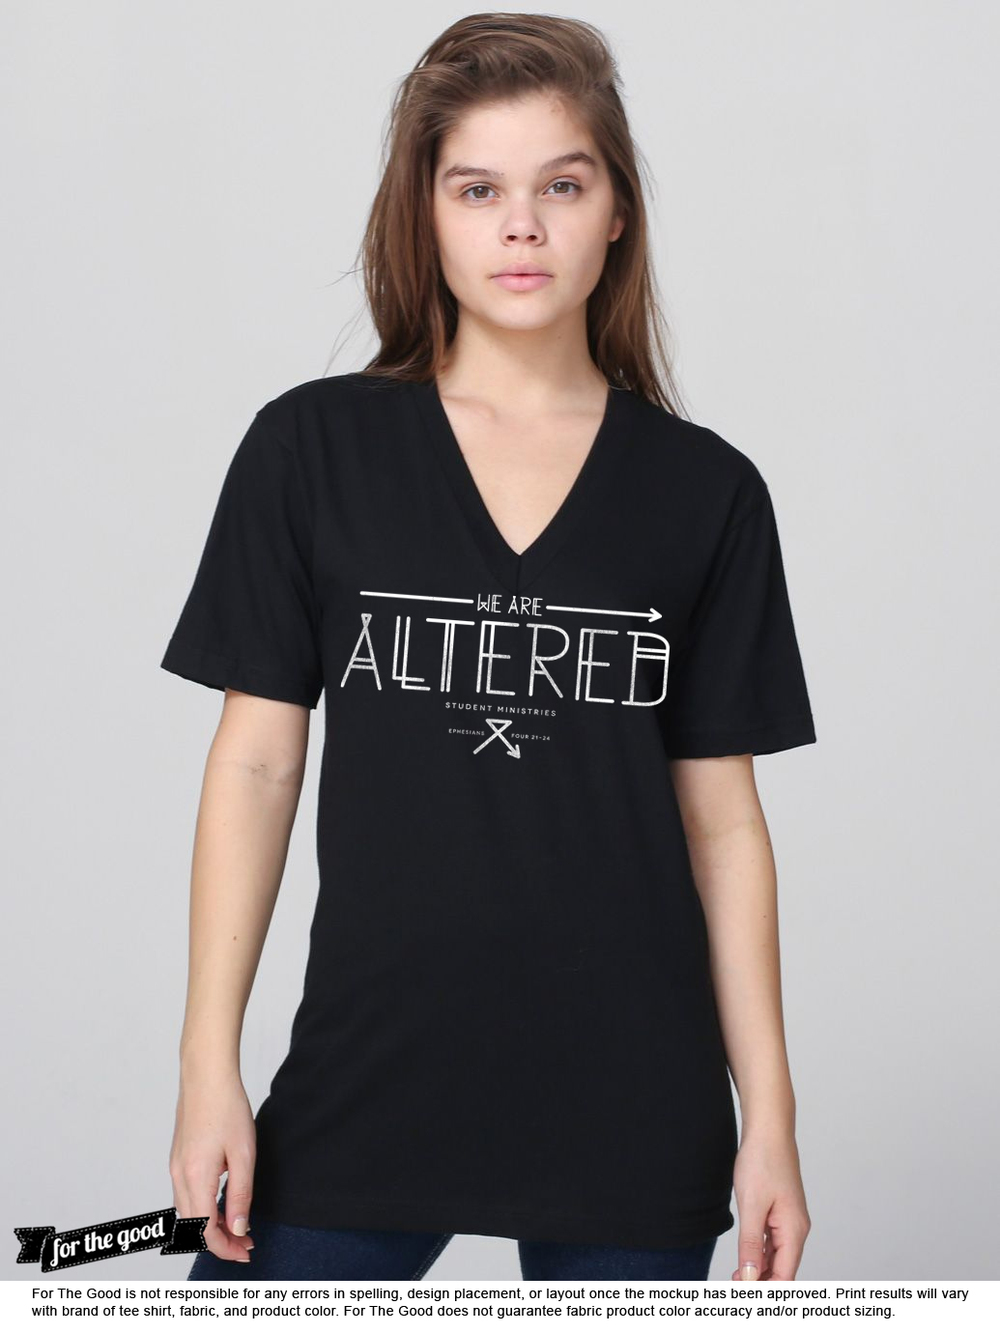 Apparel concept | Altered Student Ministries